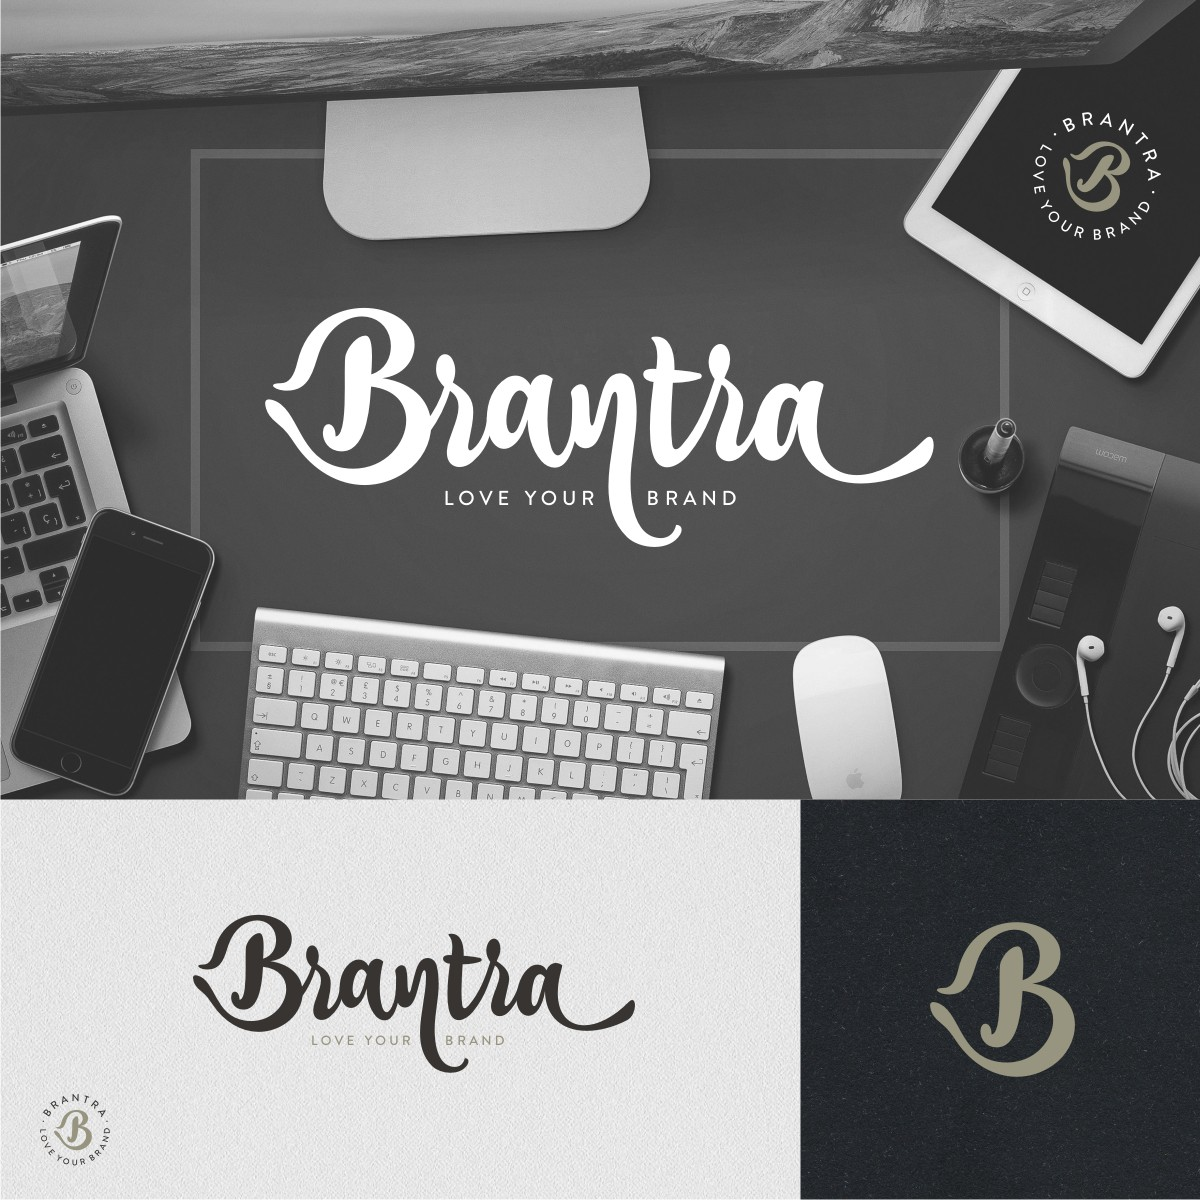 Looking for a vintage style, refined brush script wordmark for Brantra - a personal brand studio